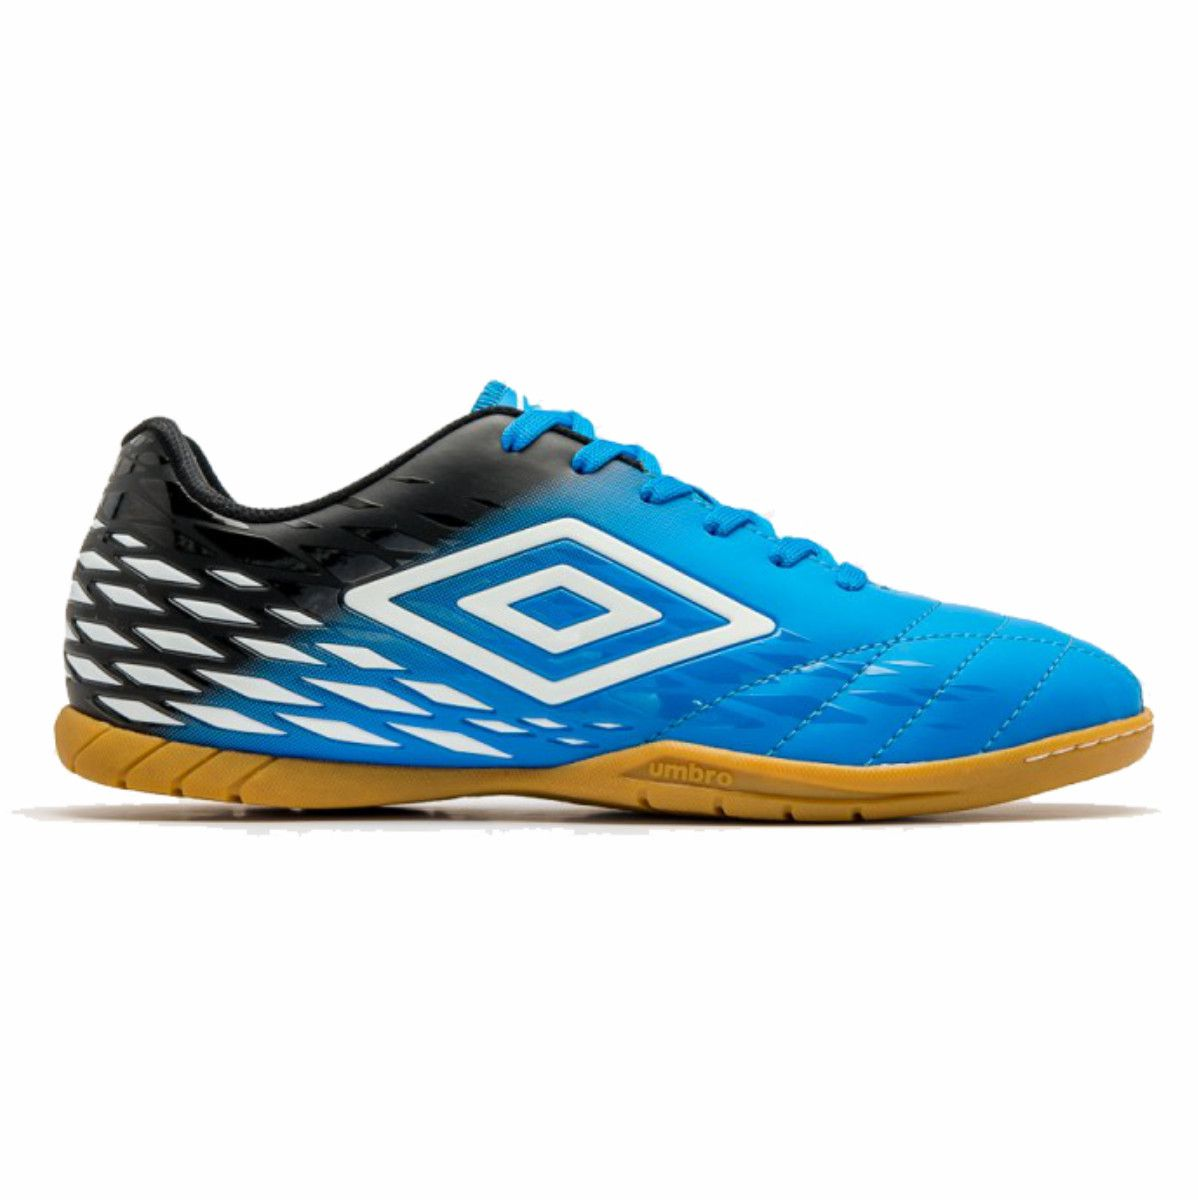 Tenis Indoor Umbro Fifty Ii 2 Futsal Azul Preto